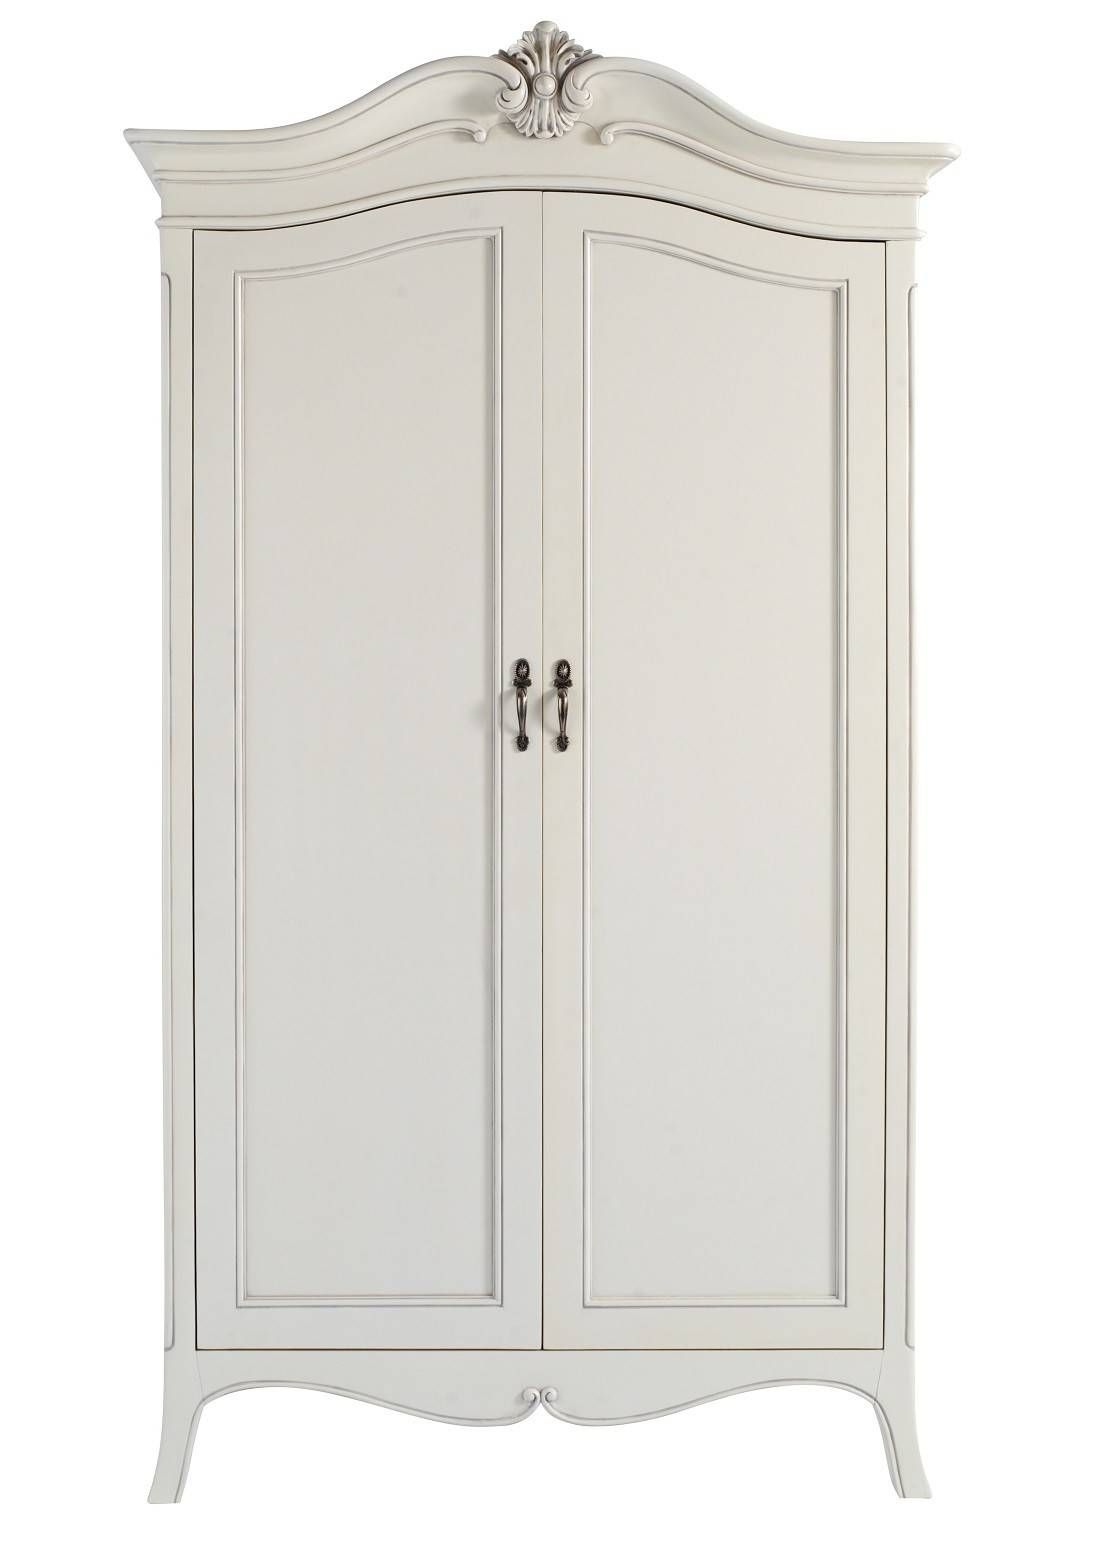 Oak Wardrobes | Oak Furniture Uk inside Ivory Wardrobes (Image 14 of 15)